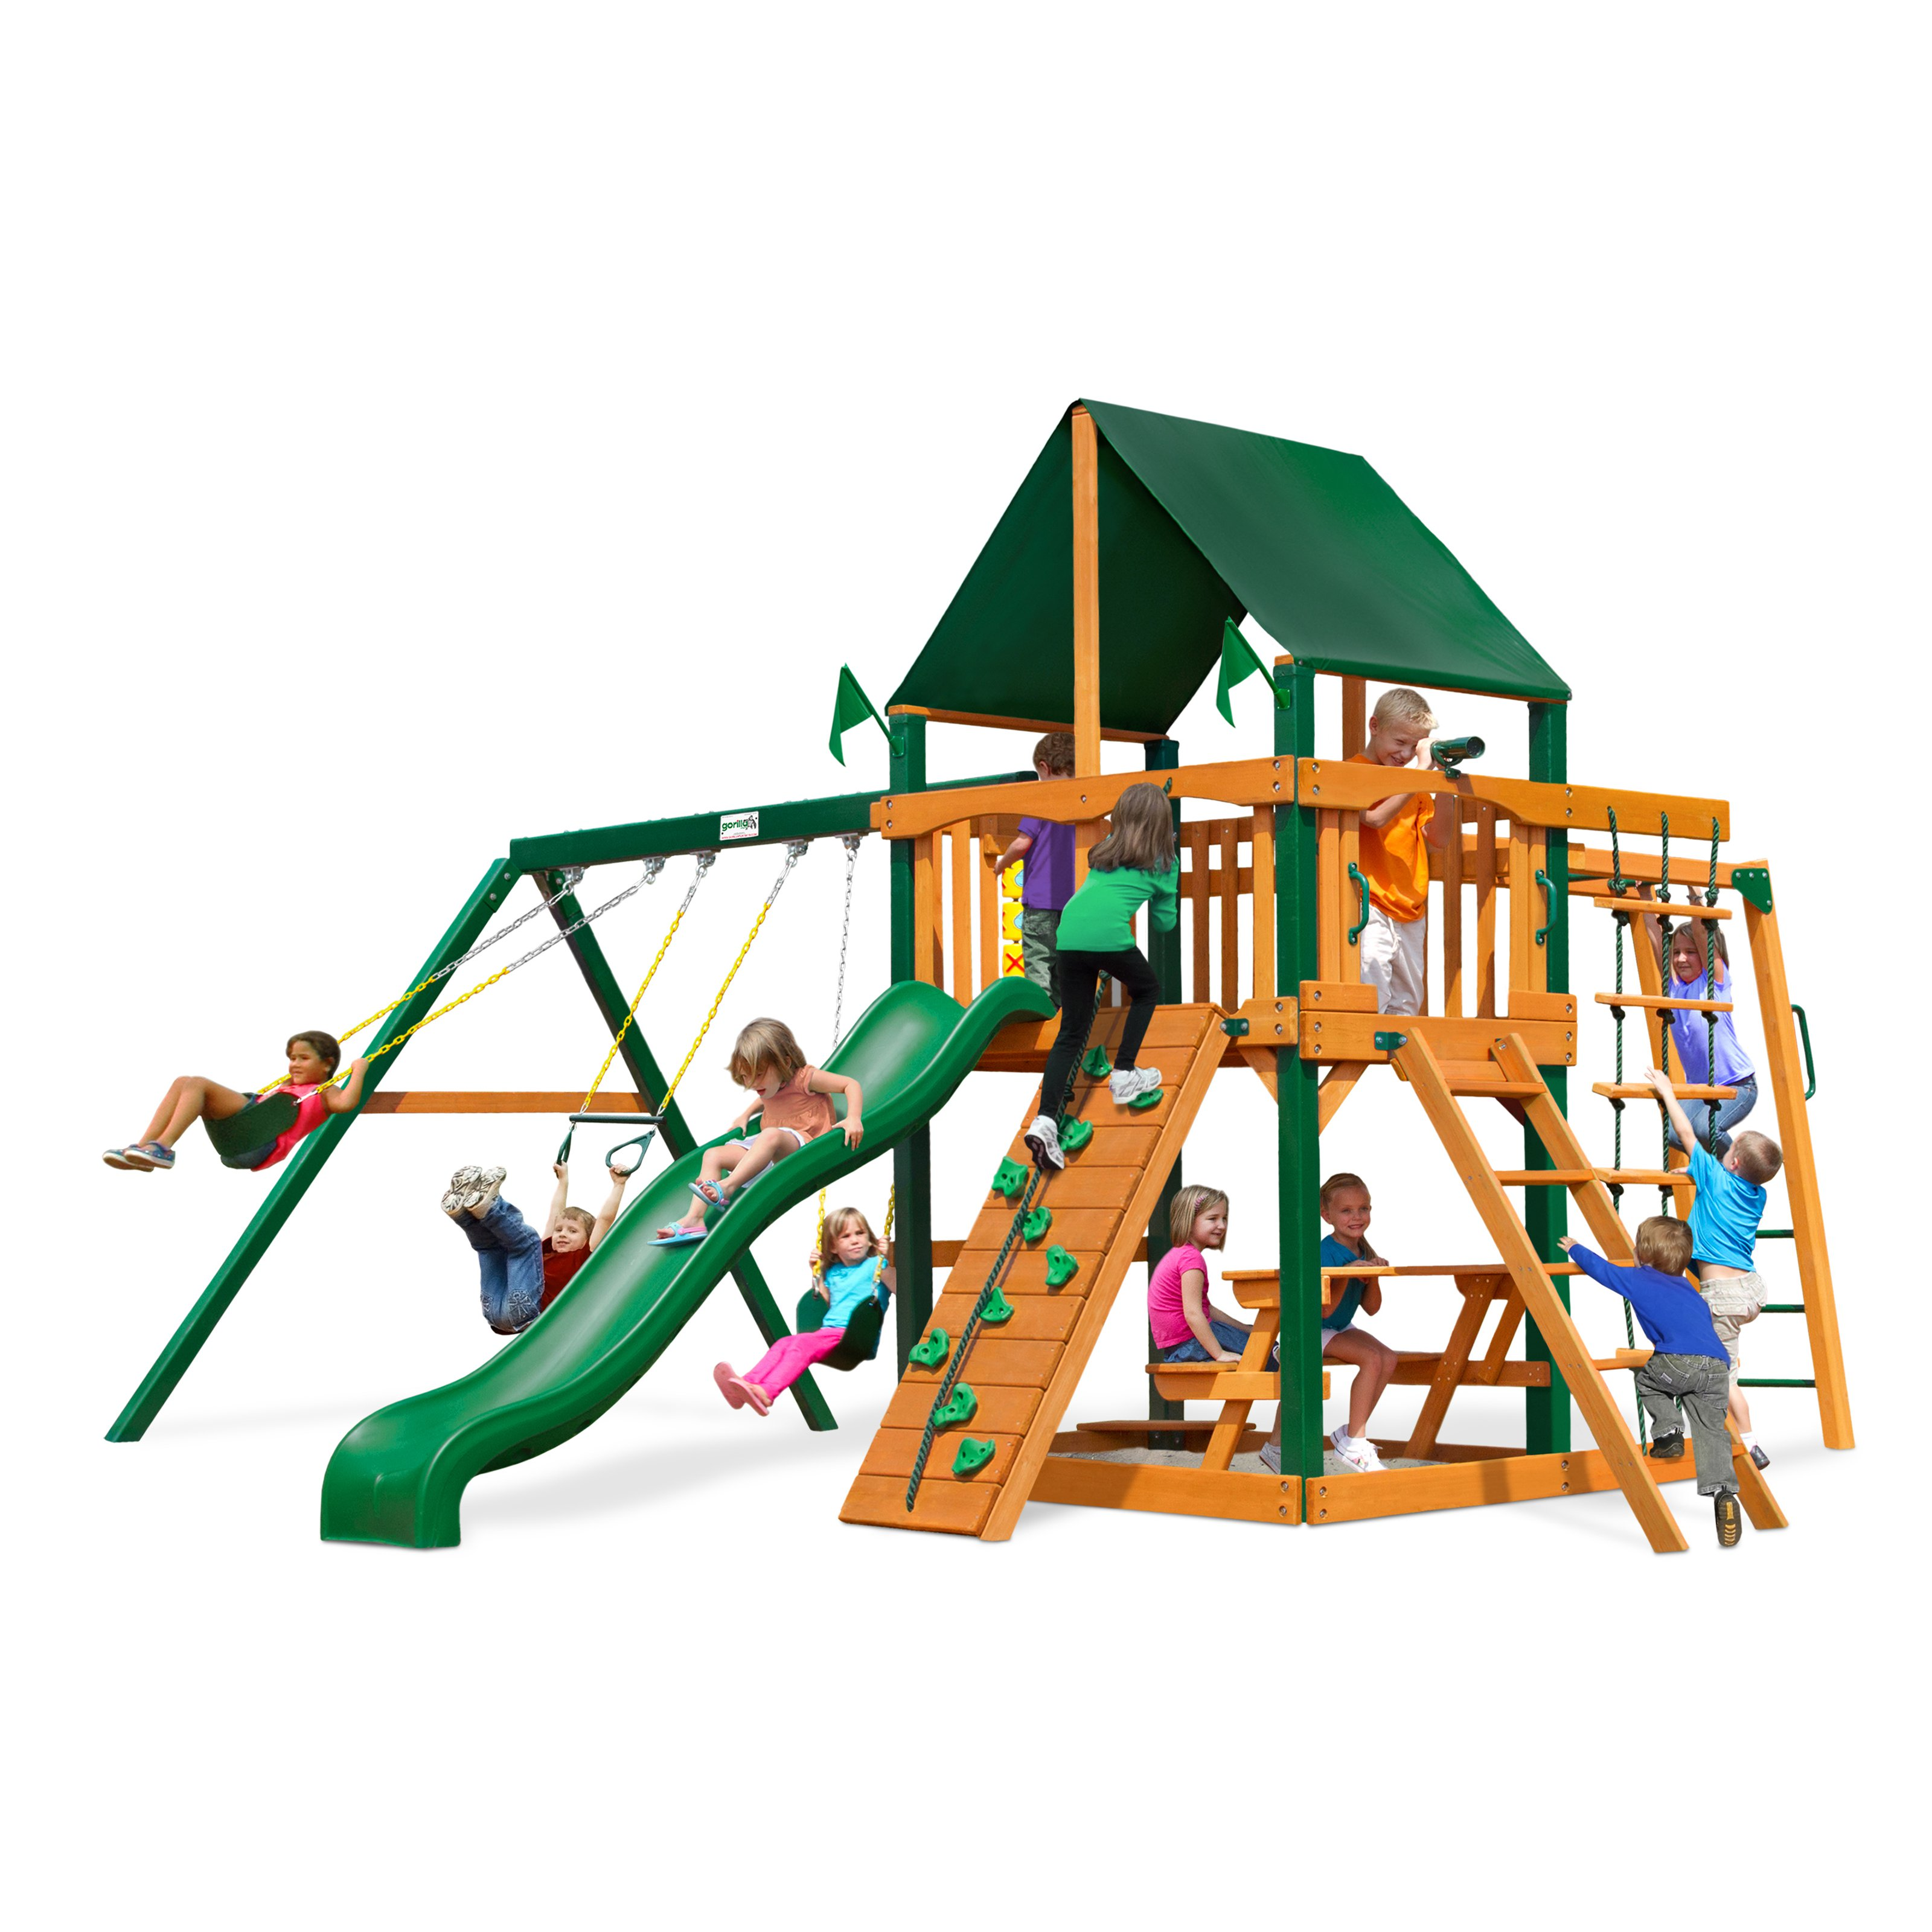 Gorilla Playsets Navigator Supreme Wood Swing Set with Sunbrella Canvas Green Canopy